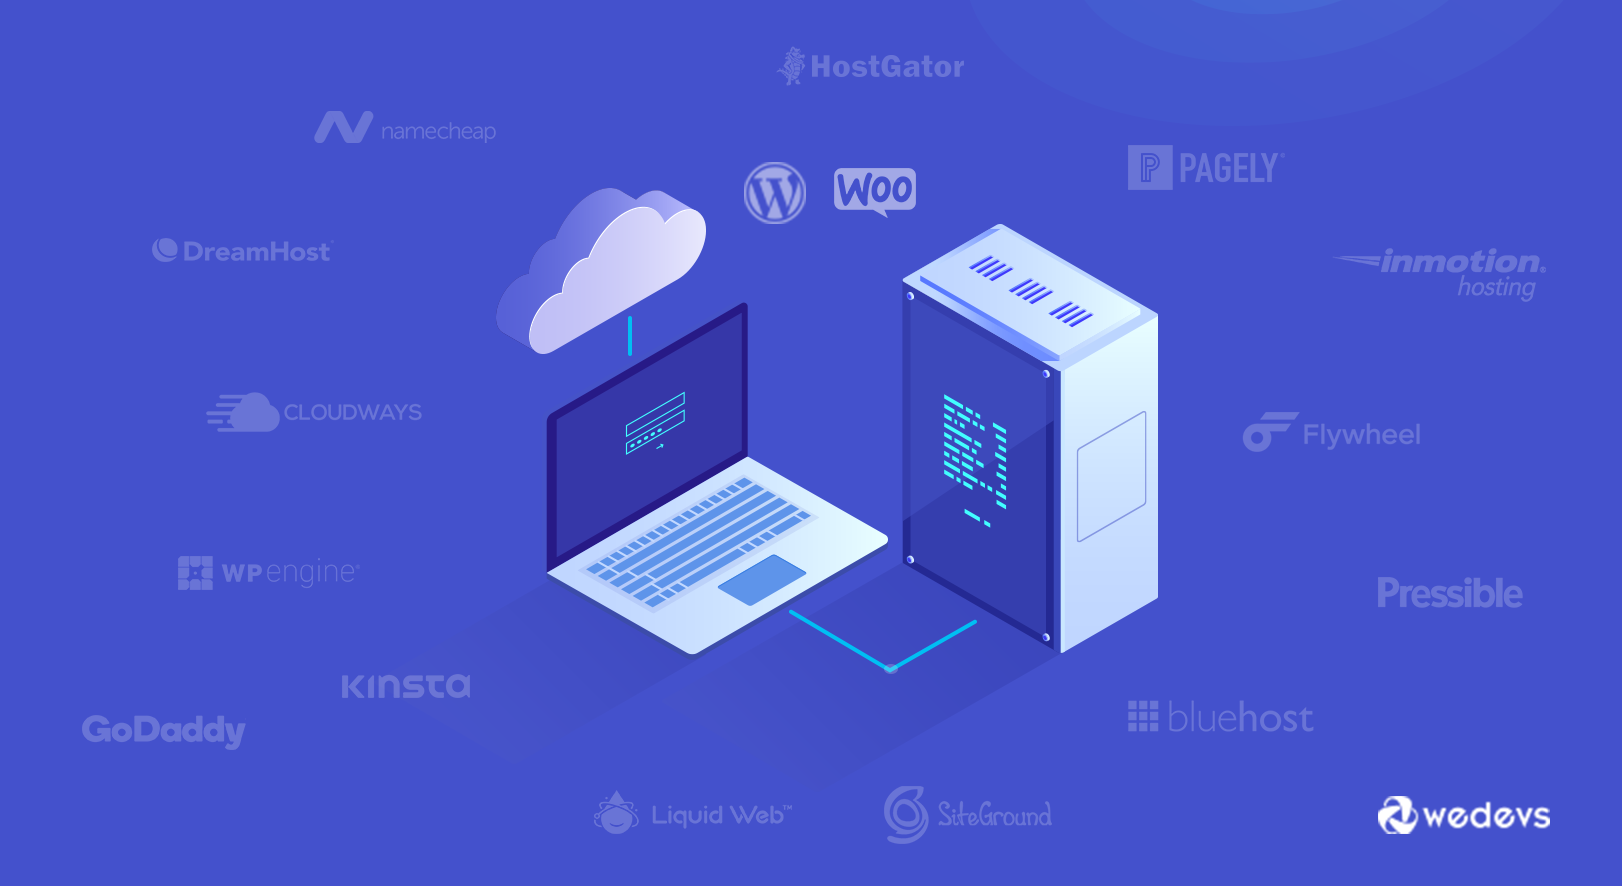 Managed Hosting for WordPress and WooCommerce Sites